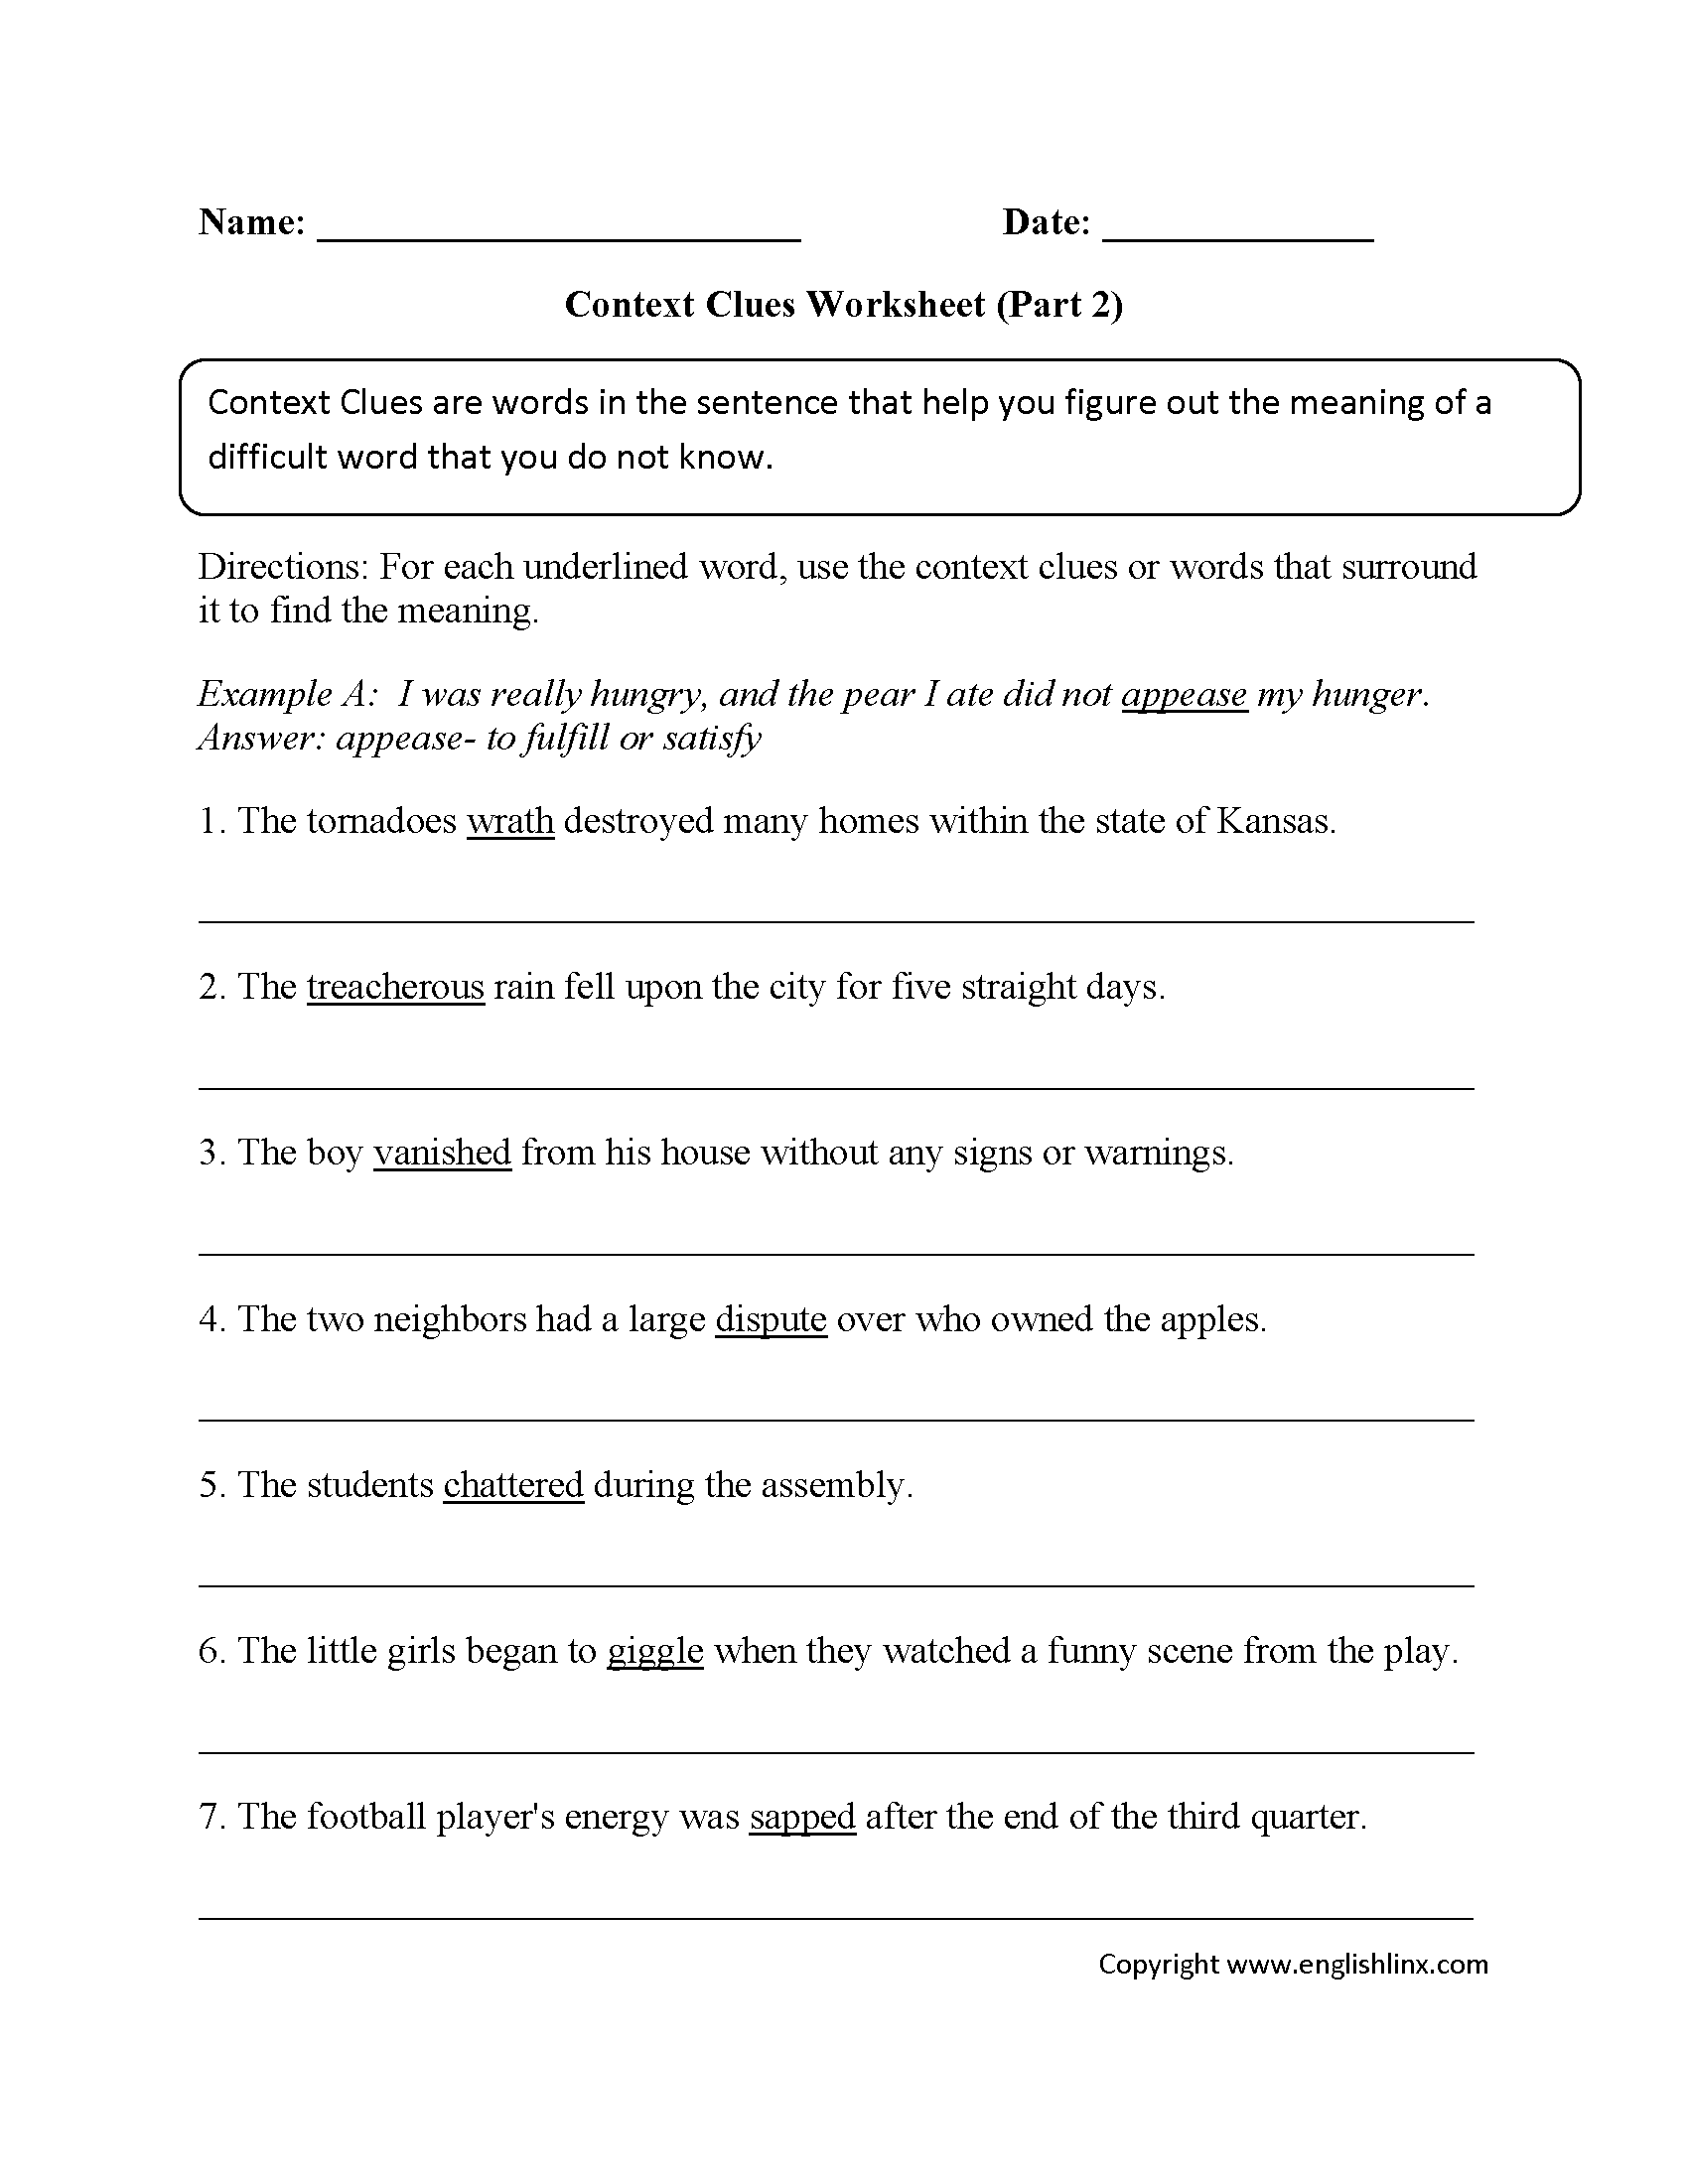 Context Clues Worksheet | Lesson Planet | lessons | Pinterest ...